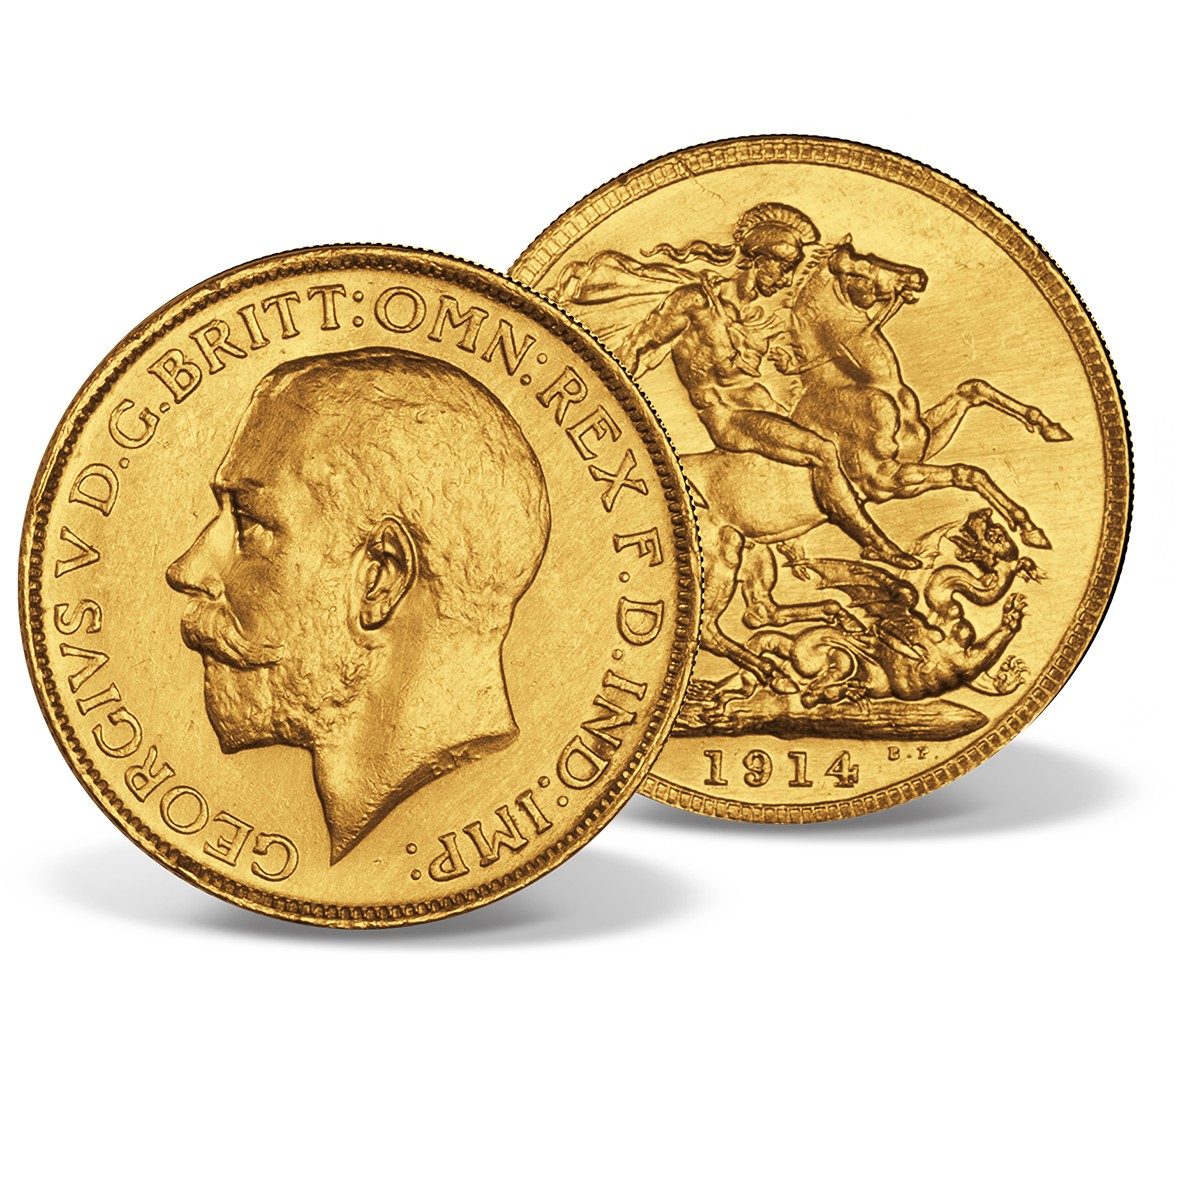 Gold currency and commemorative coins | Windsor Mint